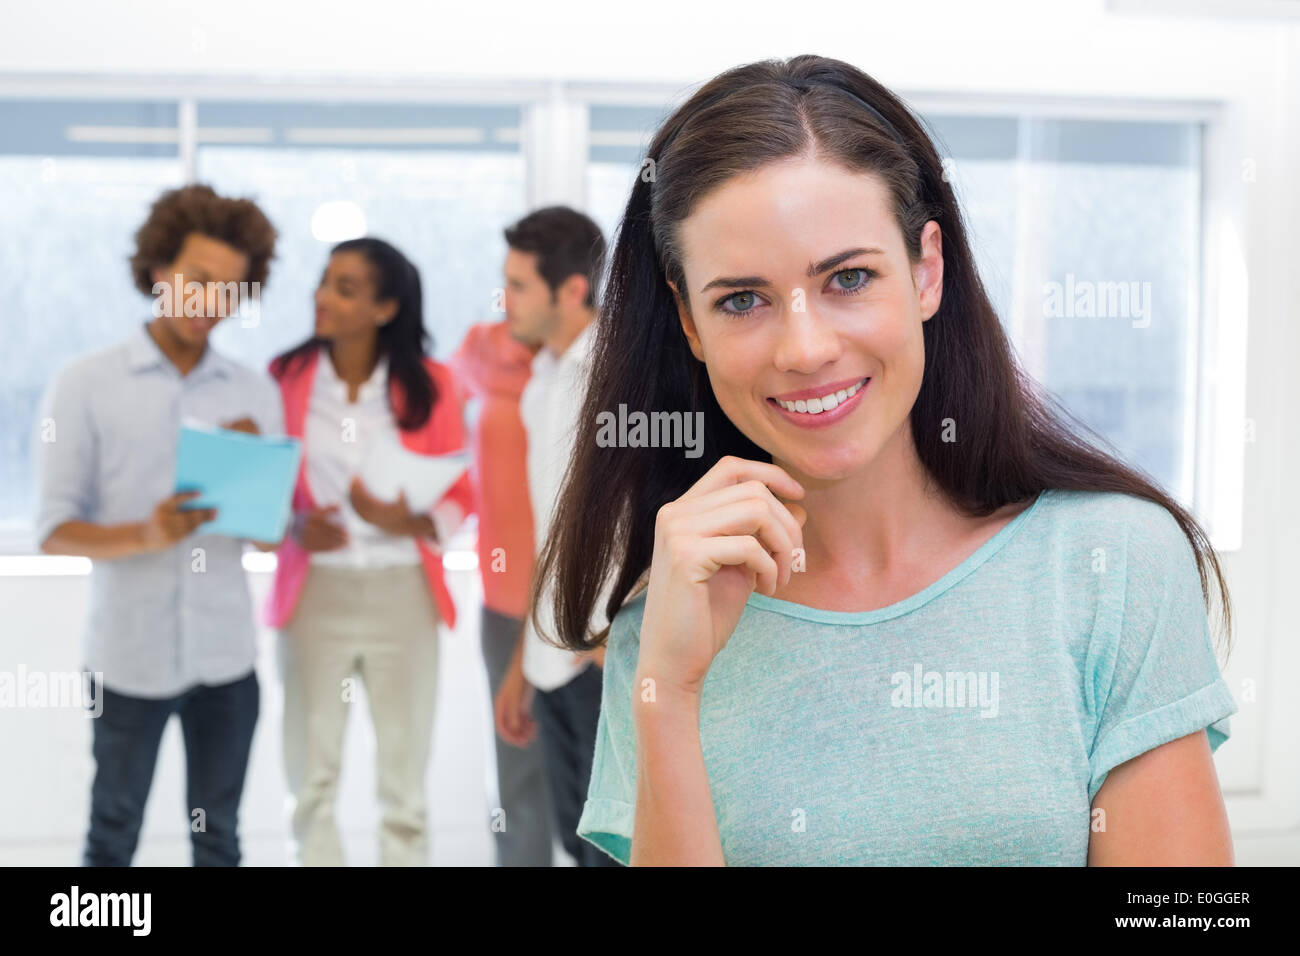 Casual businesswoman smiling at camera Photo Stock